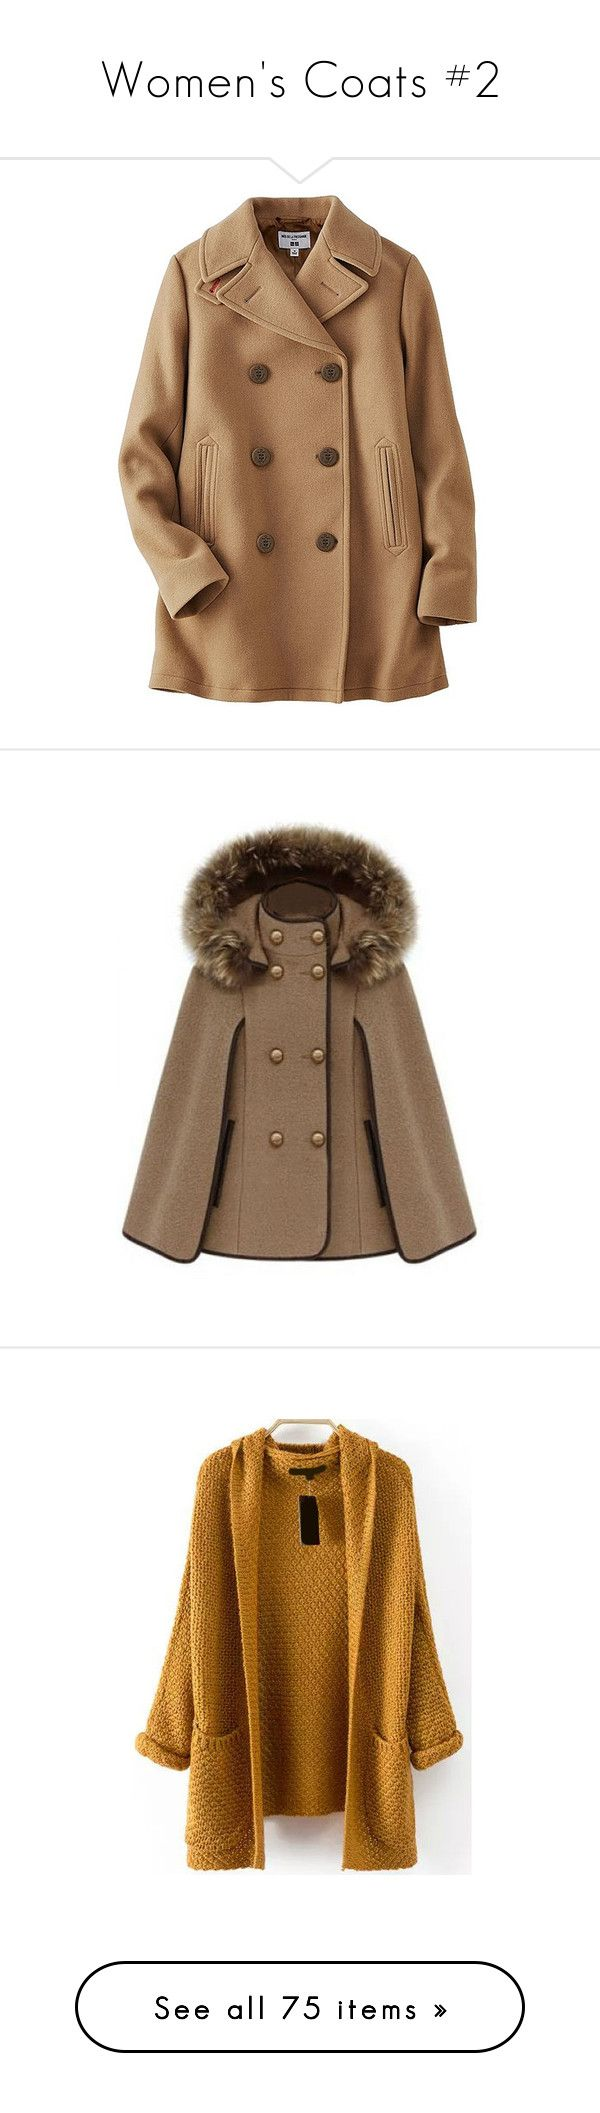 """Women's Coats #2"" by nathalialopes-1 ❤ liked on Polyvore featuring outerwear, coats, jackets, coats & jackets, brown coat, brown peacoat, wool blend coat, brown pea coat, peacoat coat and cape"